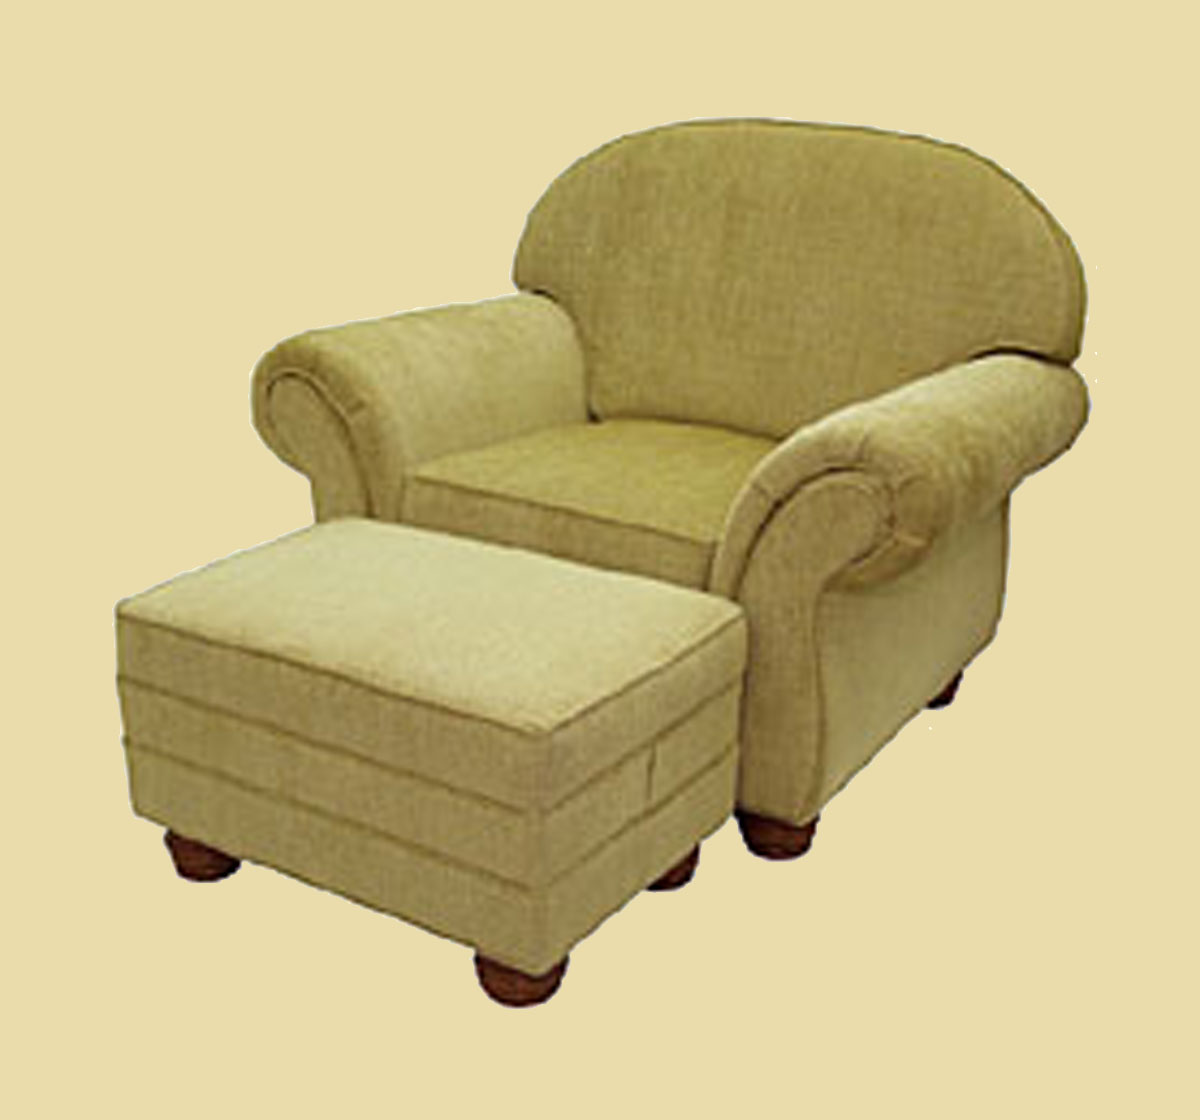 jetton sofas sofa recliners canada welcome to hartford house